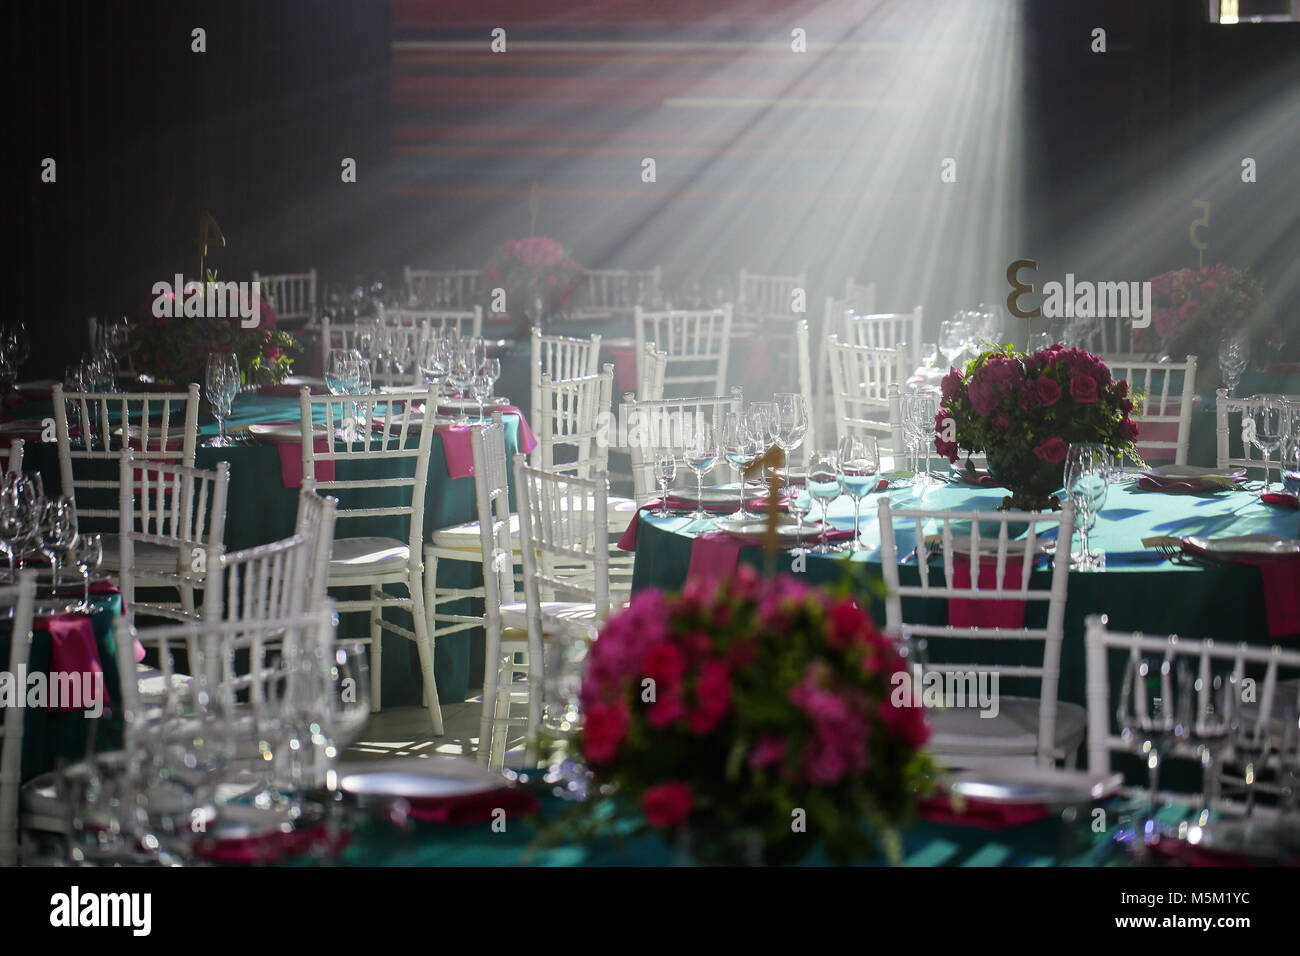 banquet hall or other function facility set for fine dining. - Stock Image